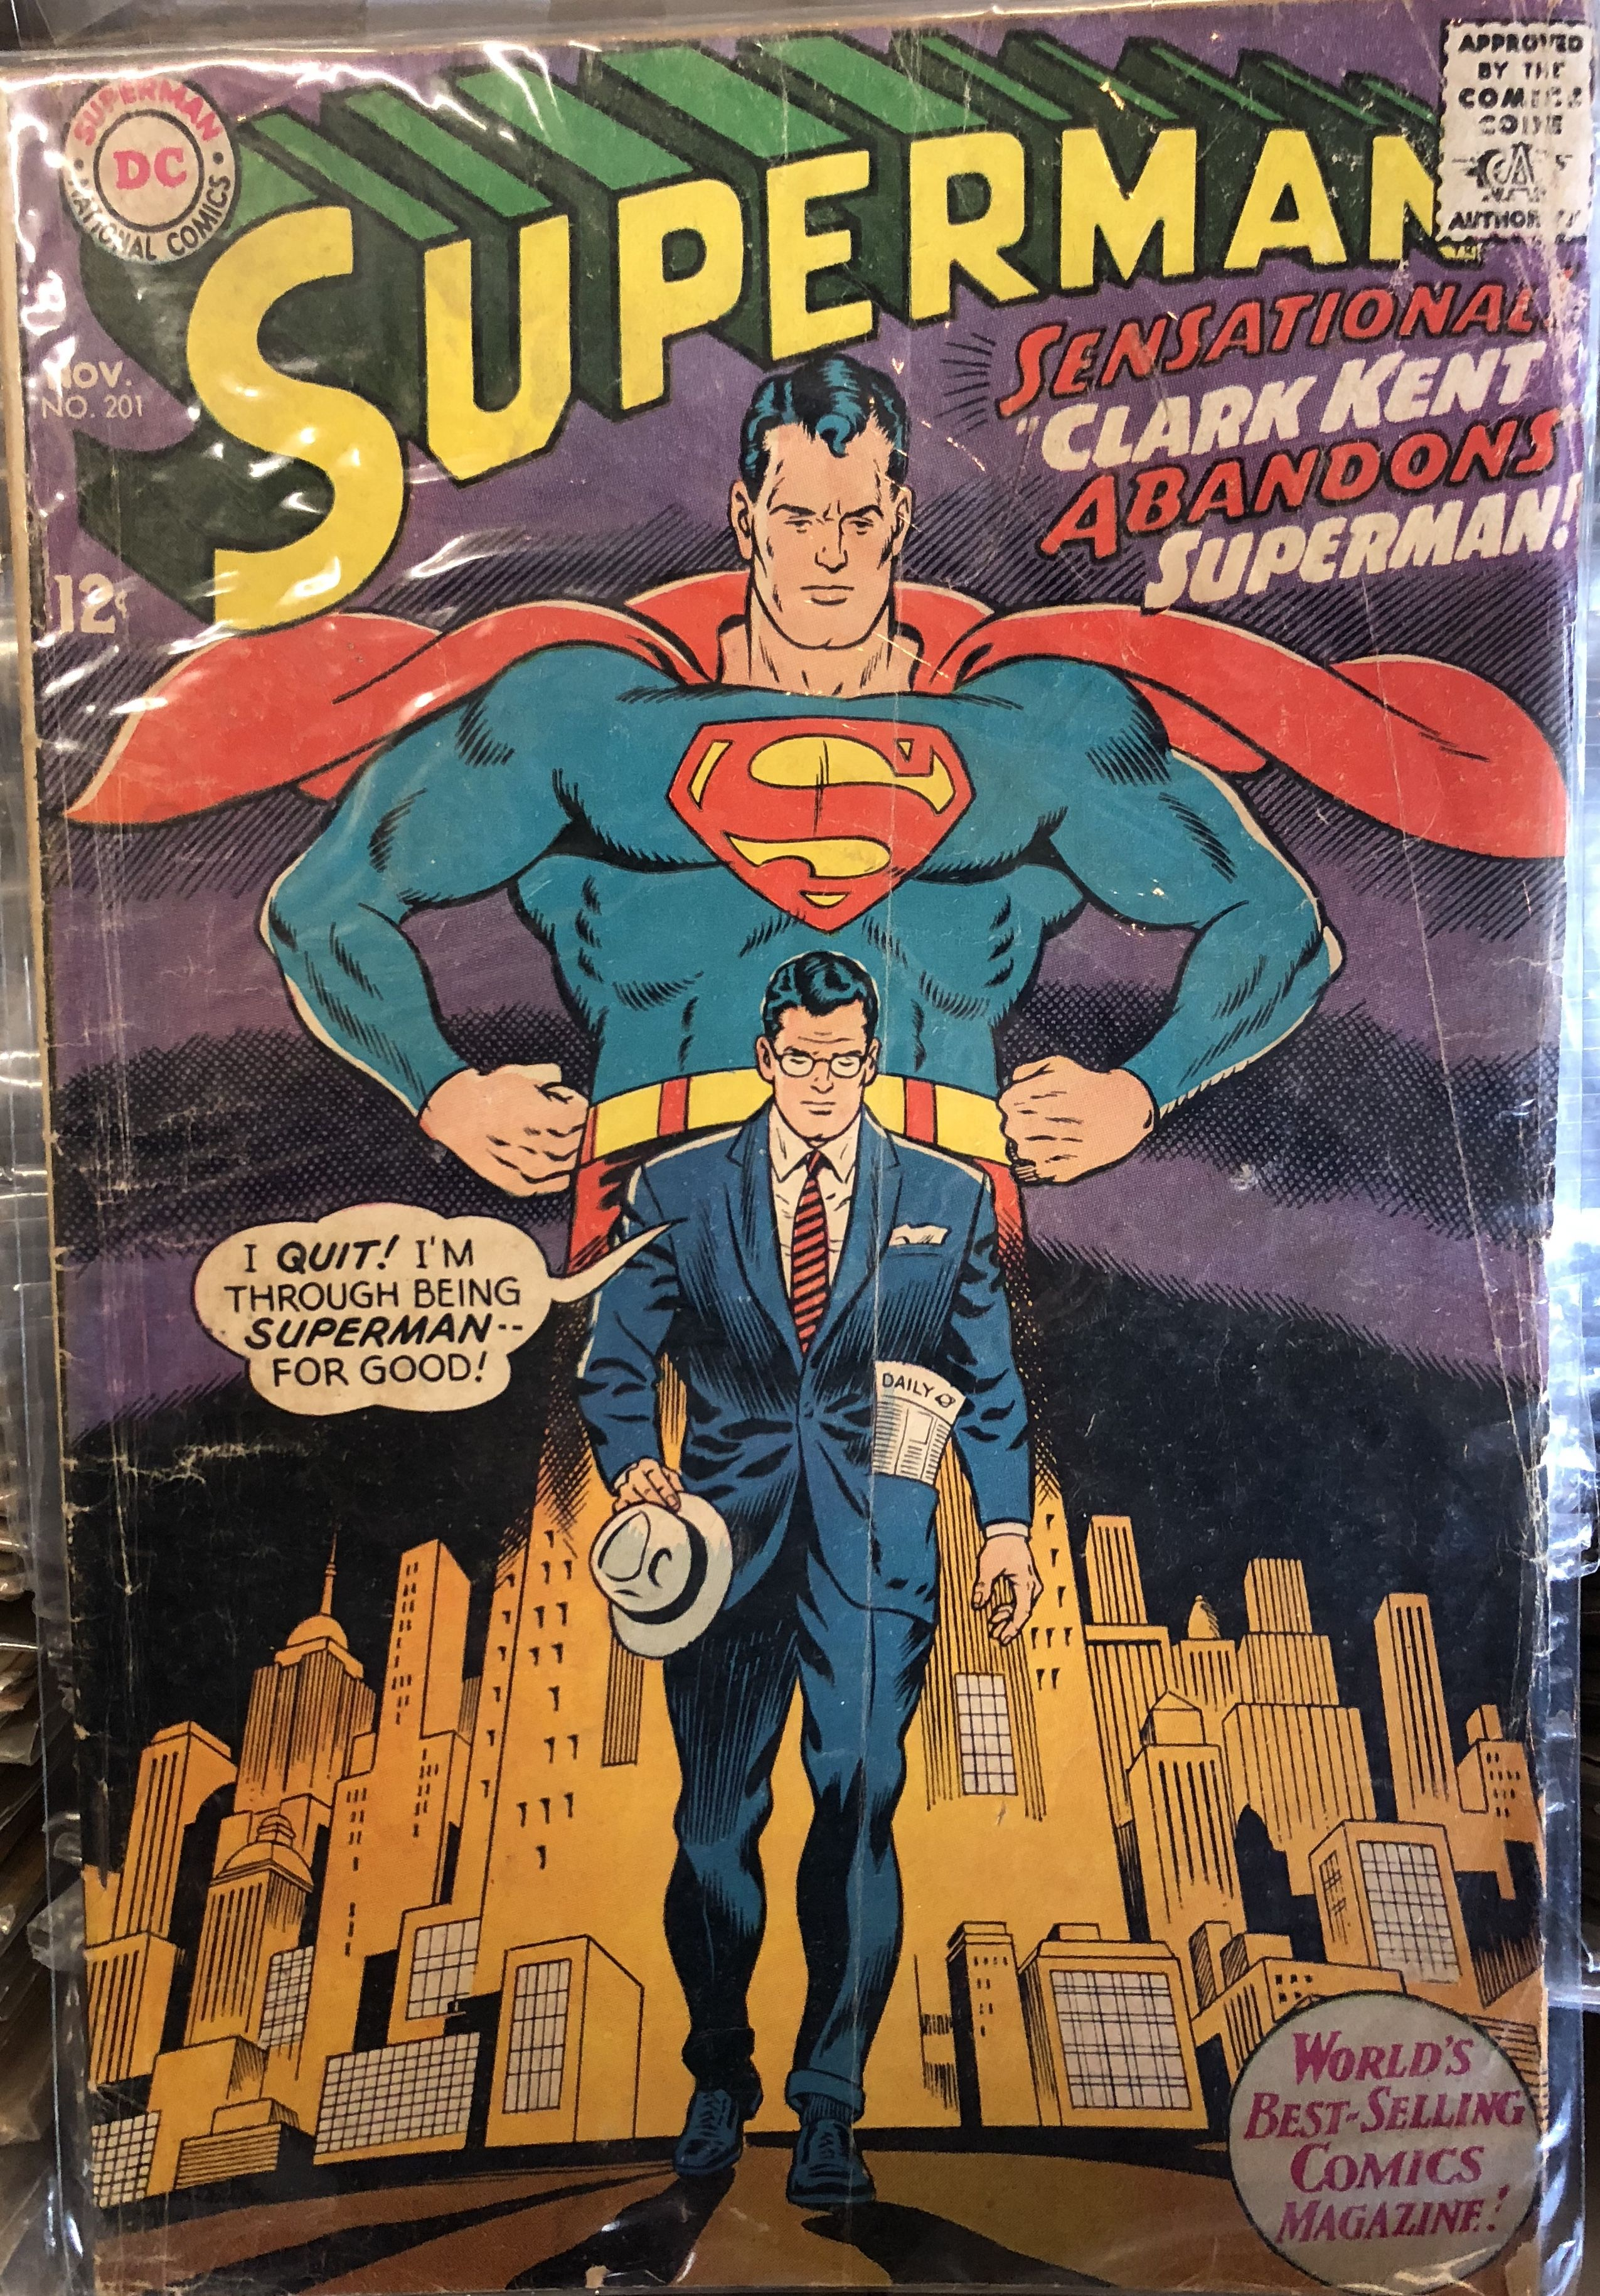 Pin By Ian Diefenbach On My Comics Superman Superman Comic Dc